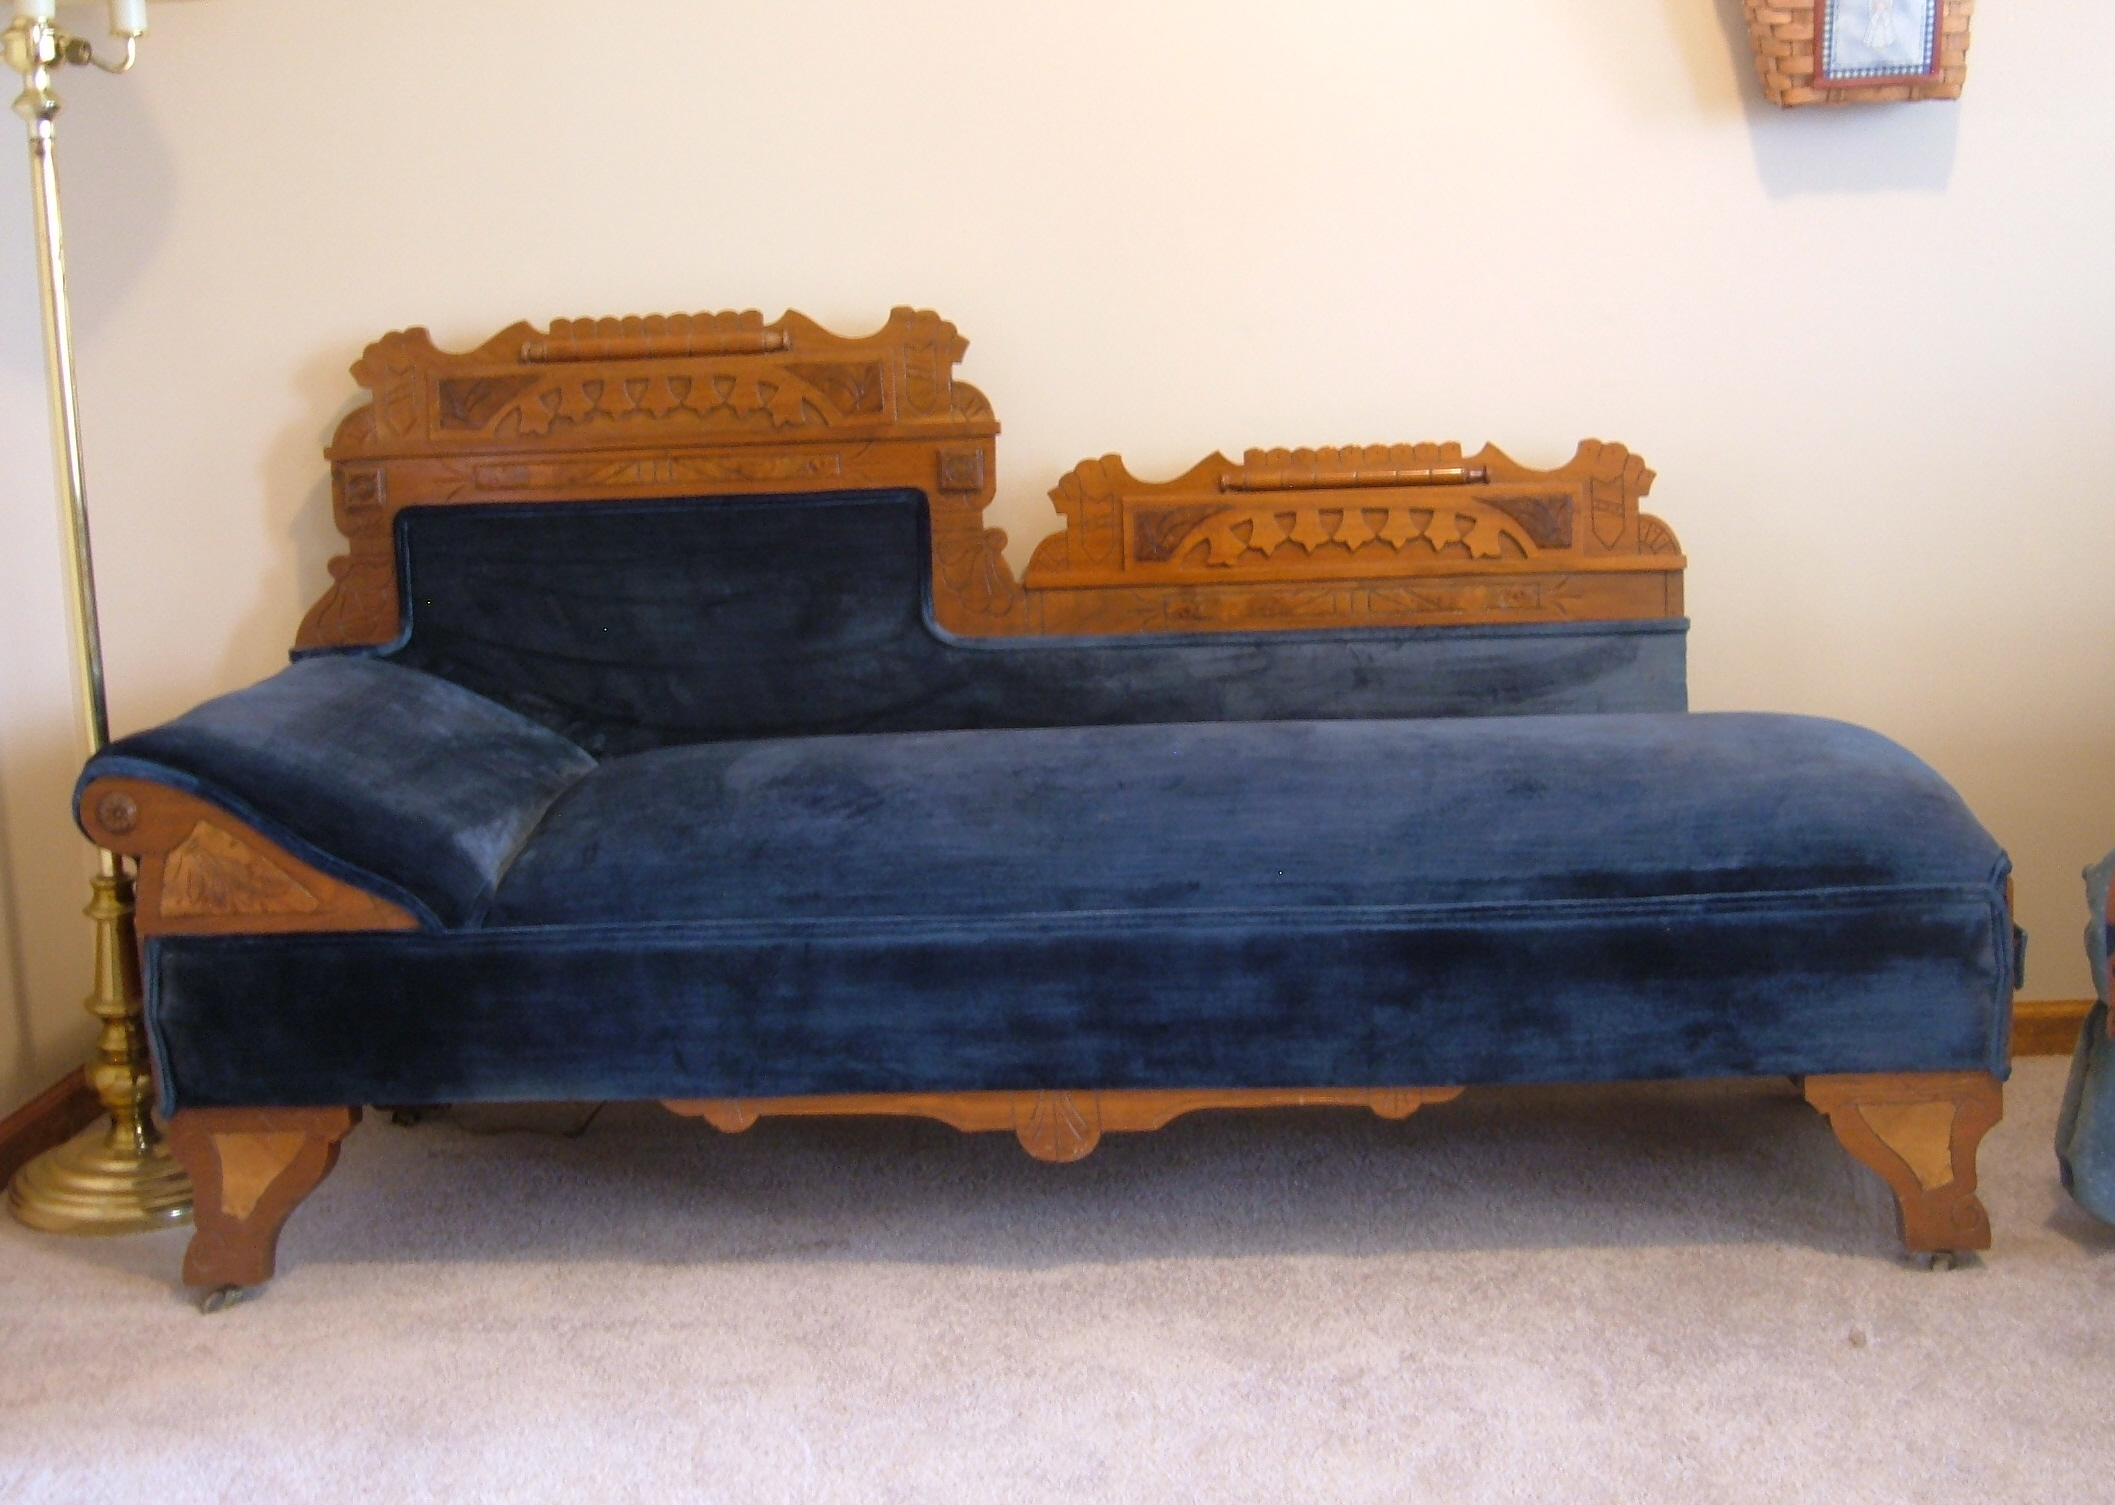 What We Have Is A Beautiful Professionally Refinished And Reapolstered Fainting Sofa Fold Out Couch Bed That Dates Back At Least To The Mid Late 1800 S